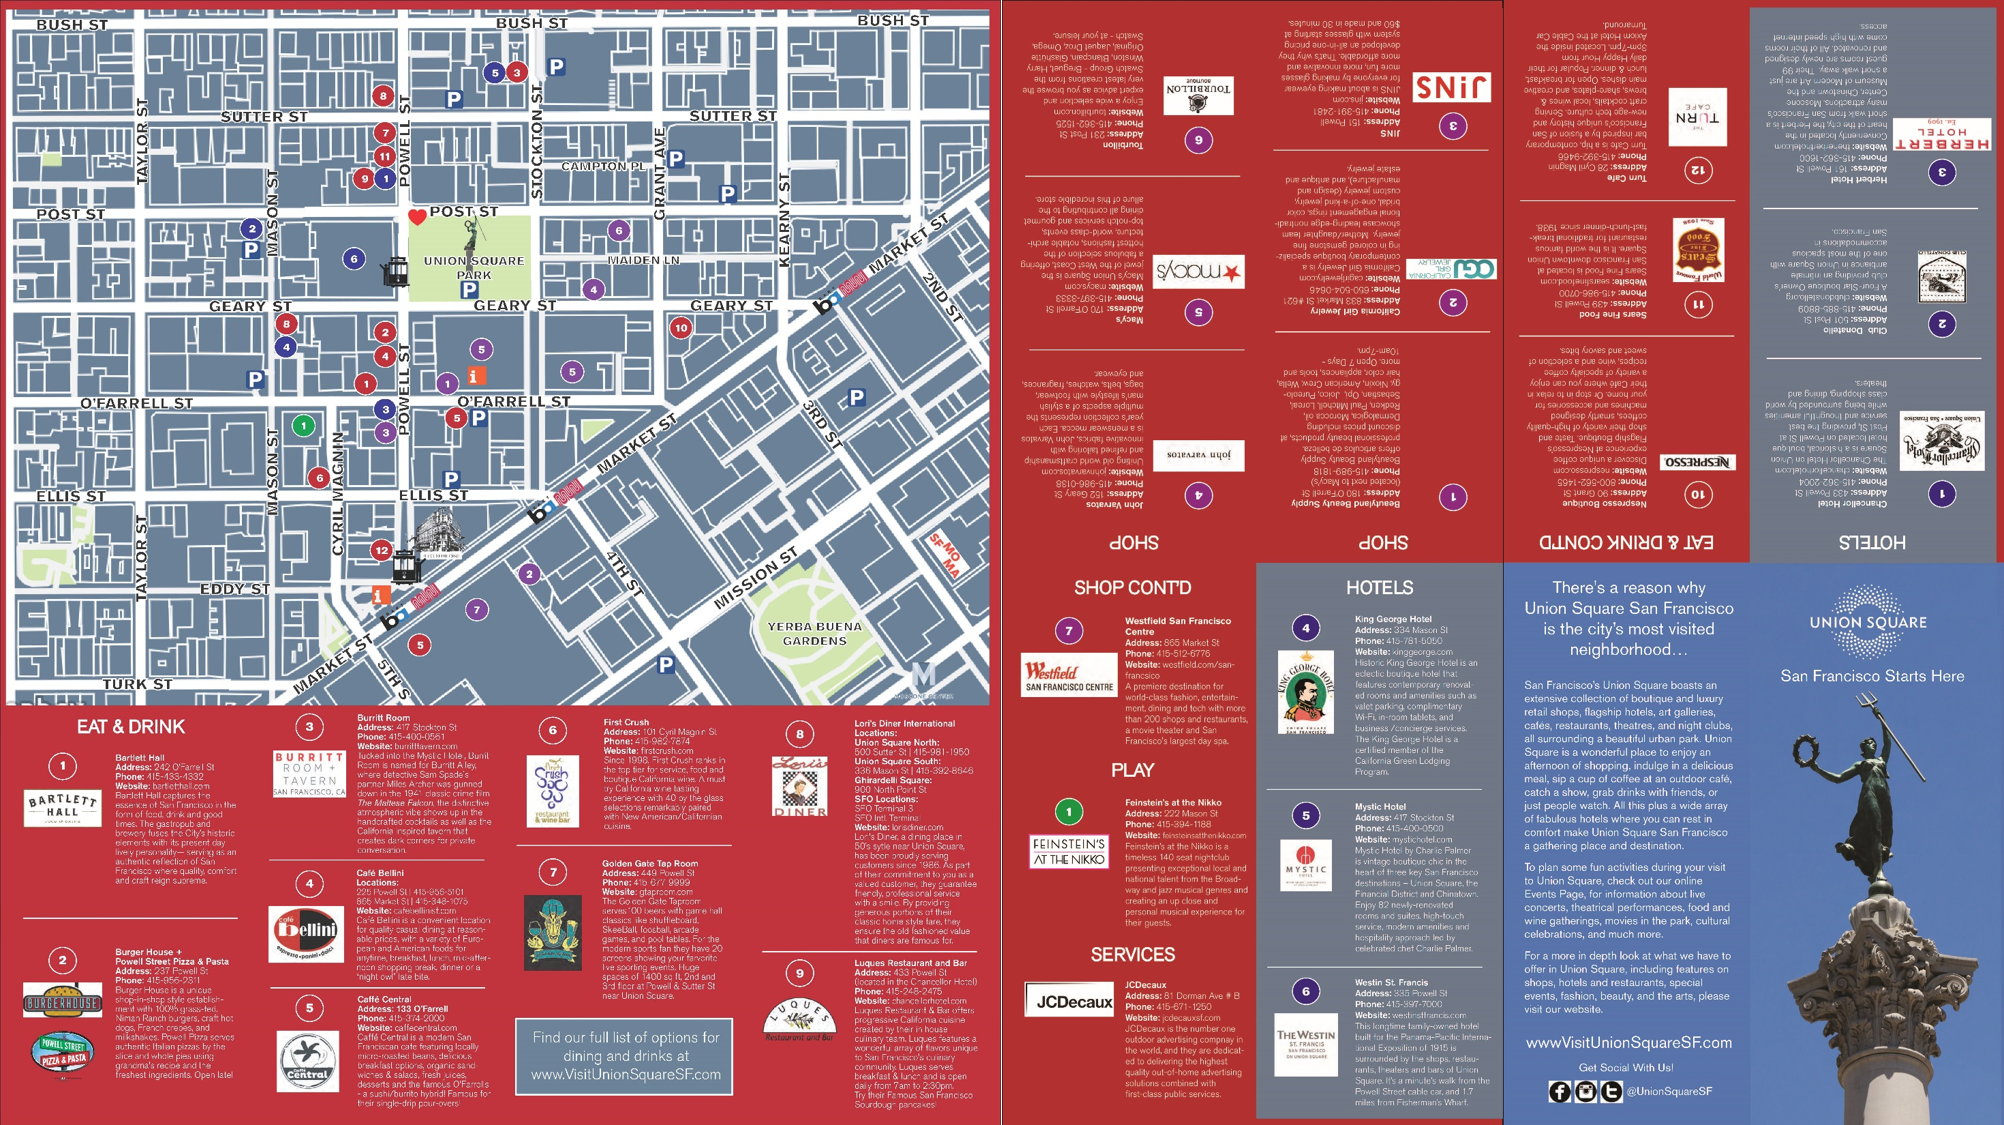 Map Of Union Square San Francisco Hotels | 2018 World's Best ... Union Square San Francisco Hotels Map on san francisco hotels civic center map, union square shopping map, union square san francisco ca map,